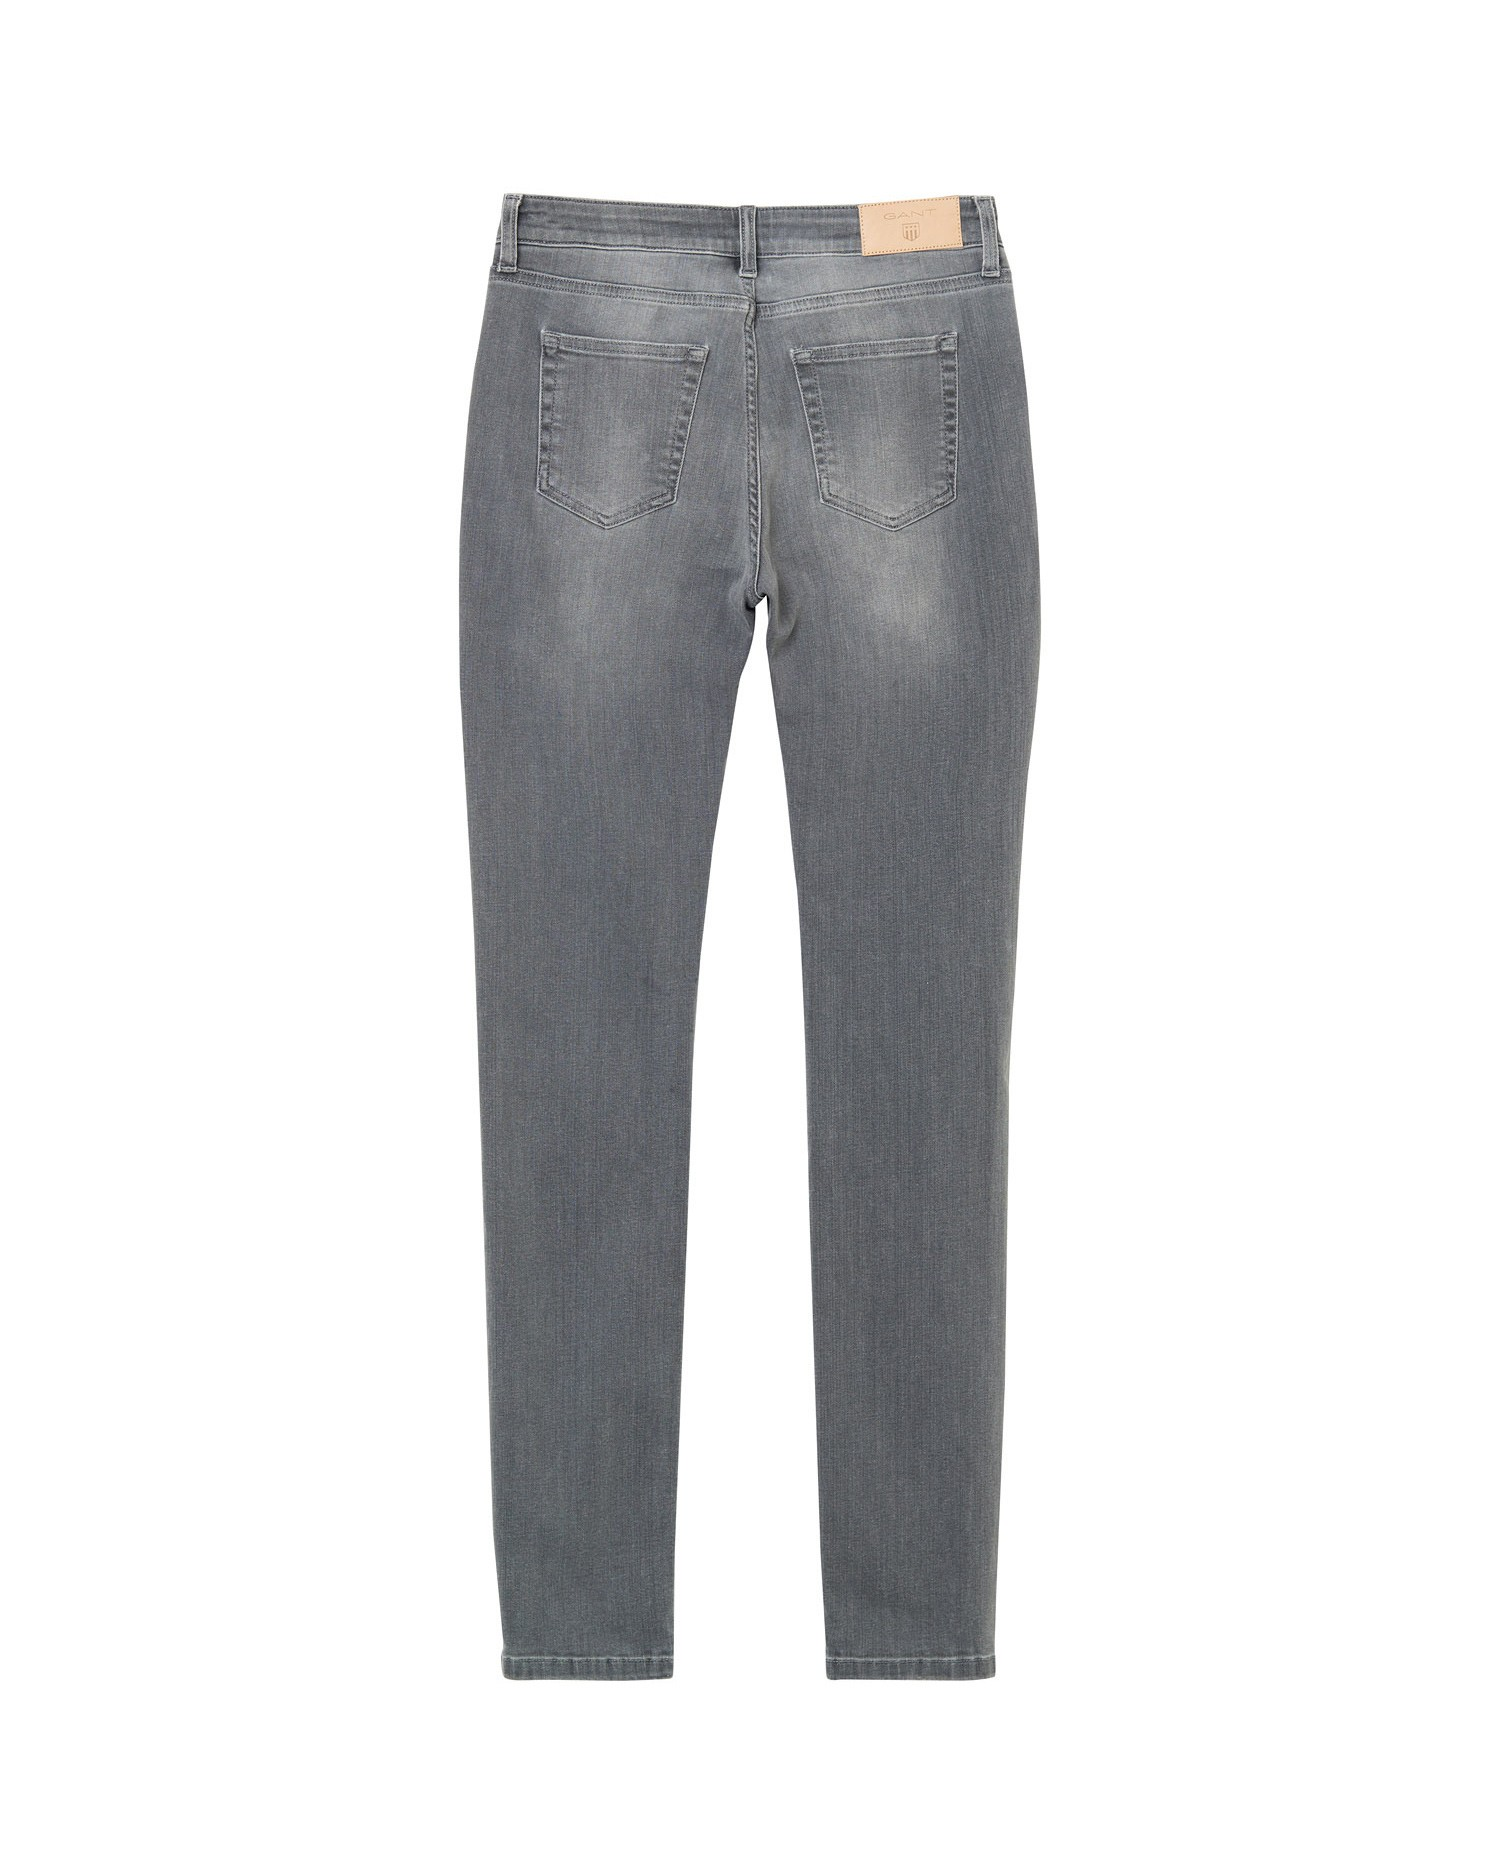 GANT Women's Slim Grey Jeans - 410272